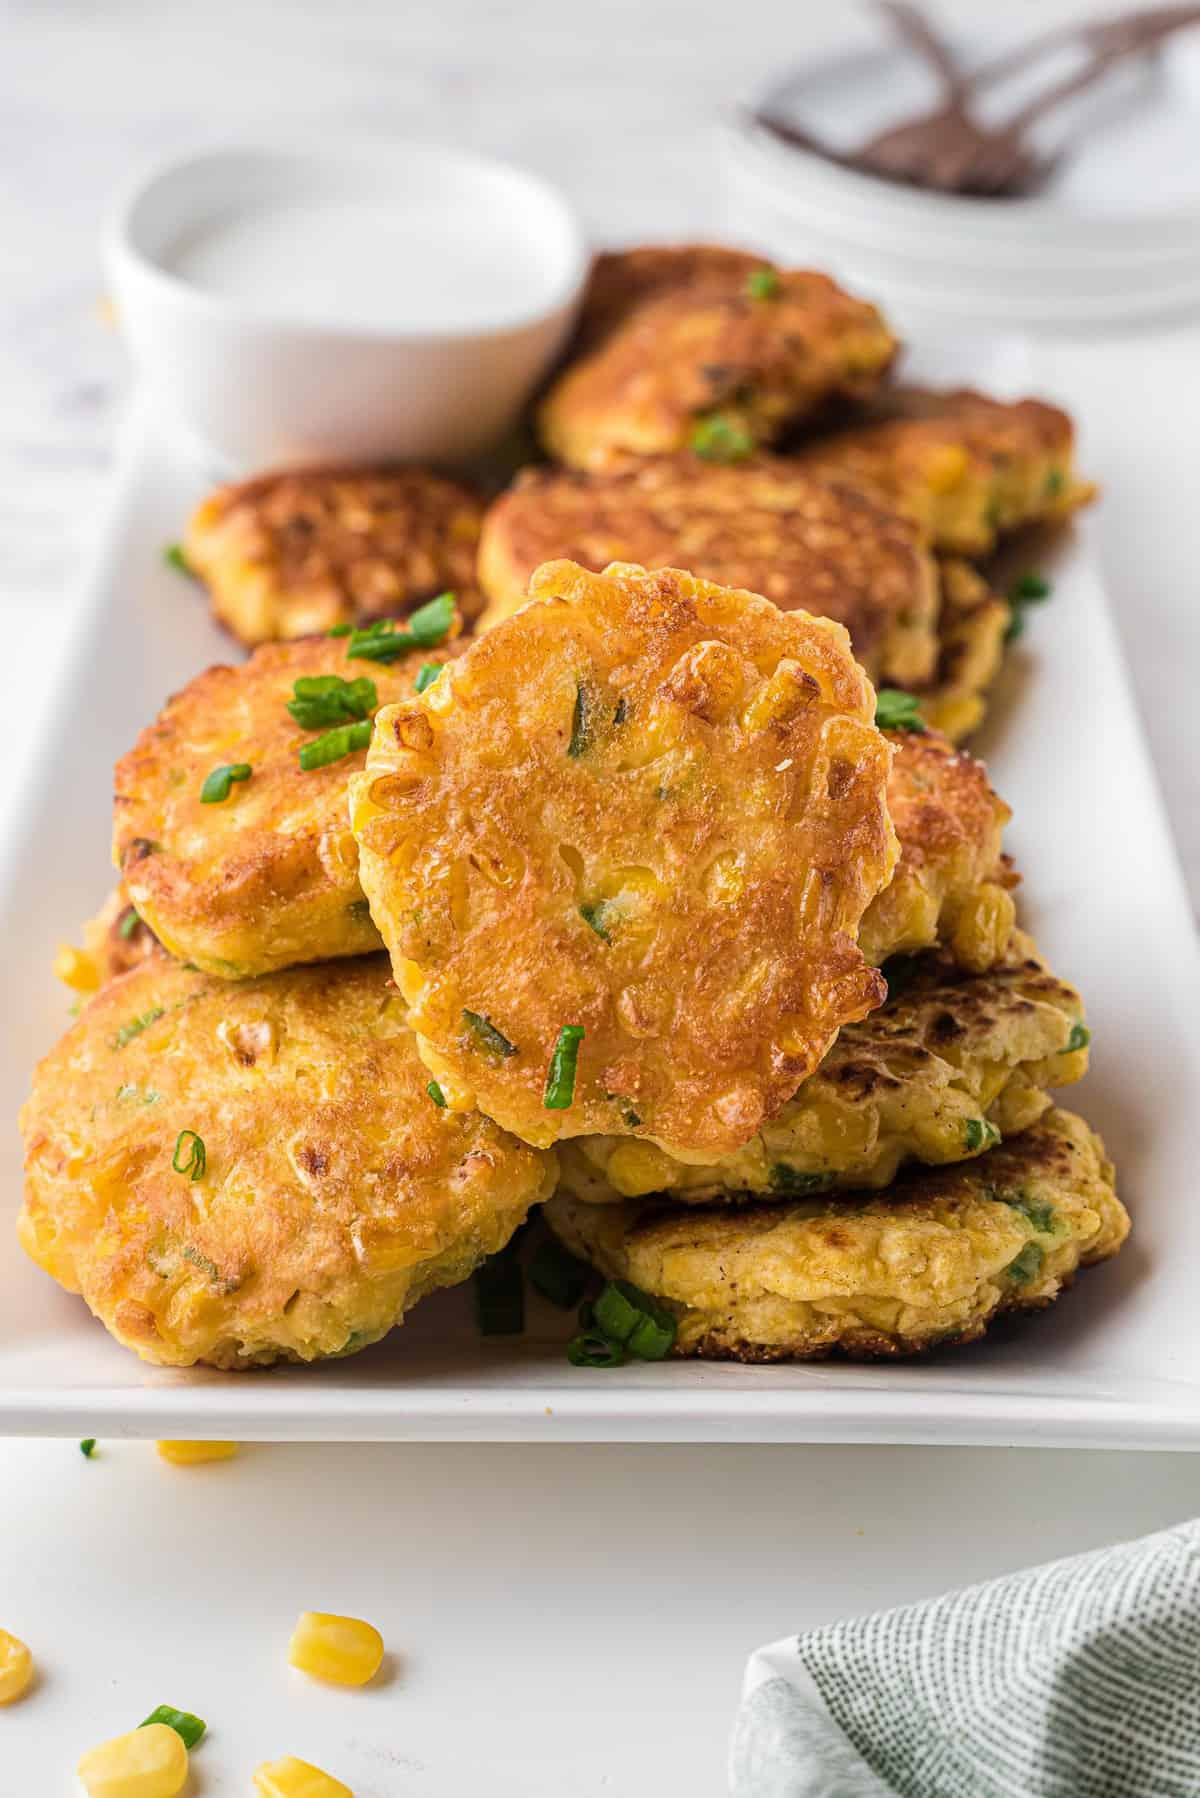 Corn fritters piled high on a white rectangular plate.